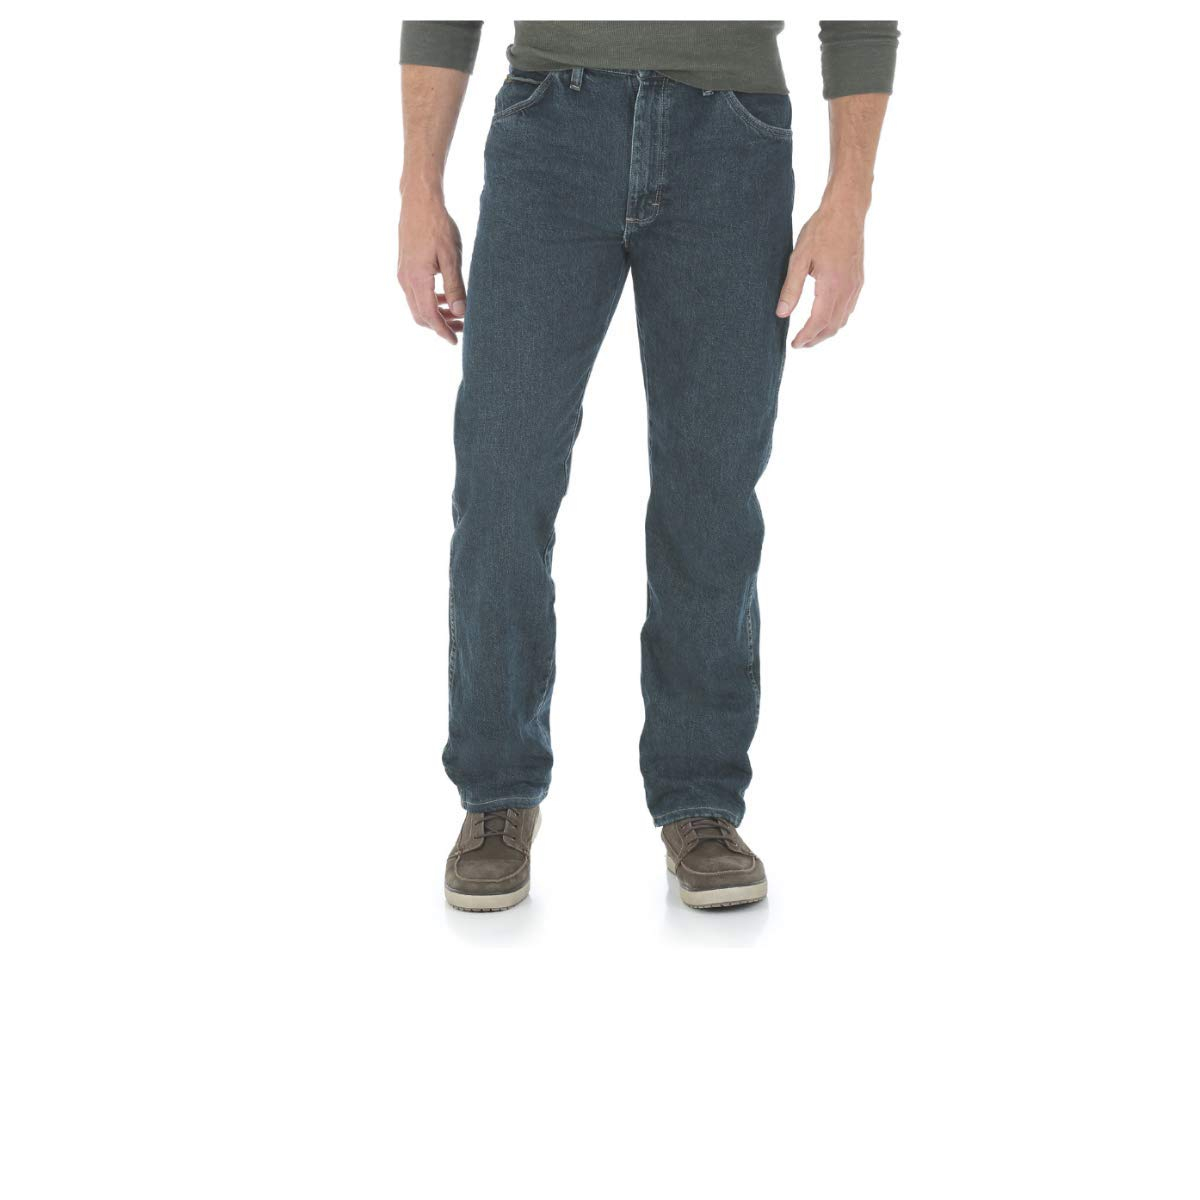 4cfd6036 Wrangler Men's 5 Star Relaxed-Fit Premium Denim Jeans at Amazon Men's  Clothing store: